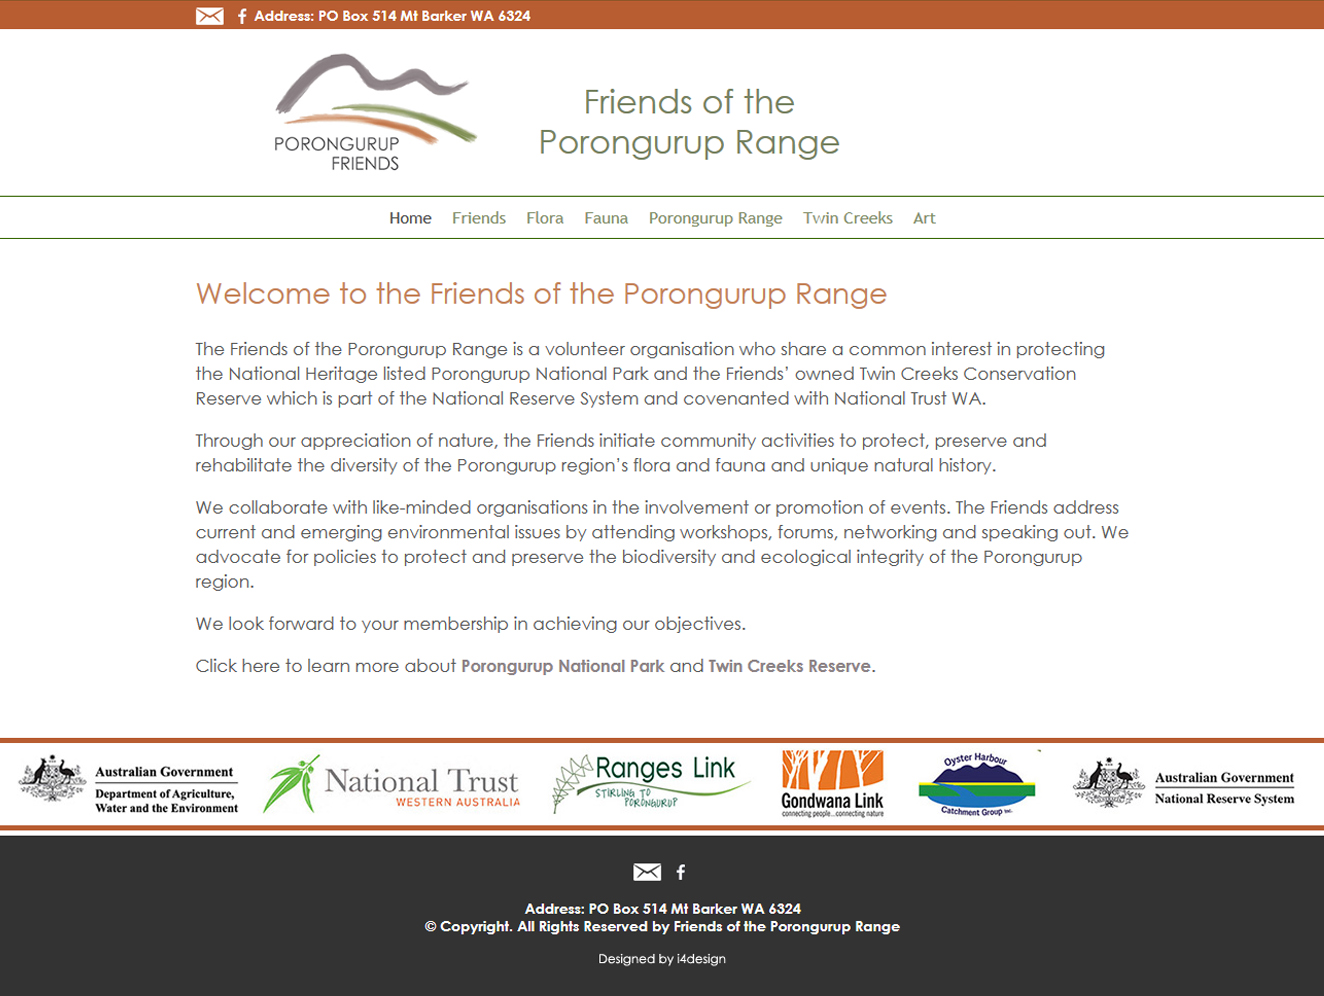 Friends of the Porongurup Range